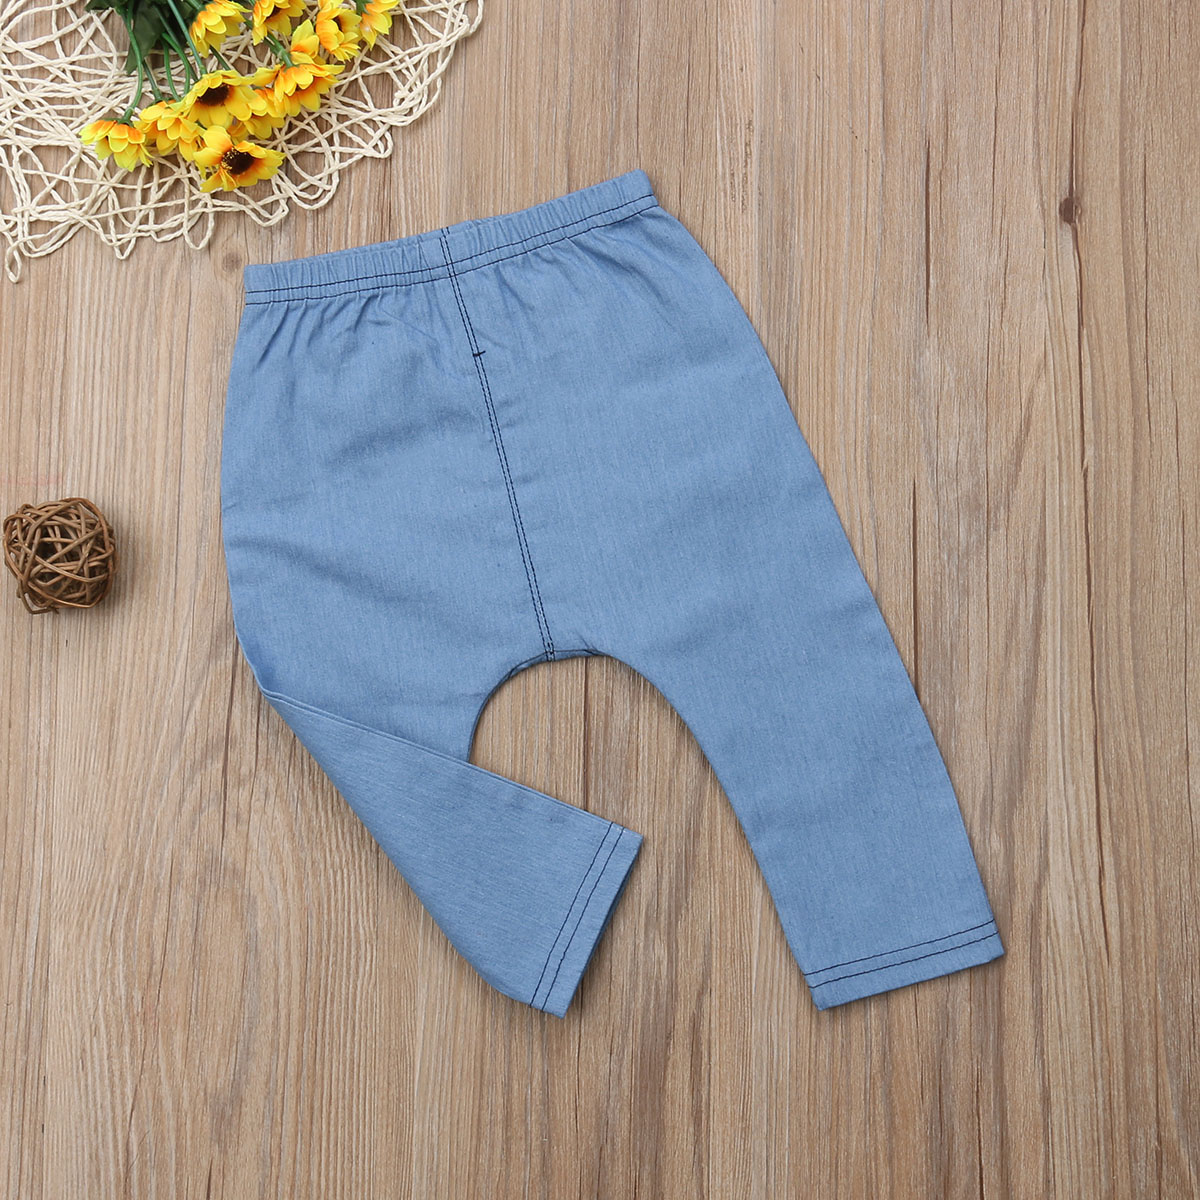 Infant Baby Boys&Girls Clothes Cartoon Bears Denim Clothing Long Pants Bottoms Kids Trousers 0-3 Years 3